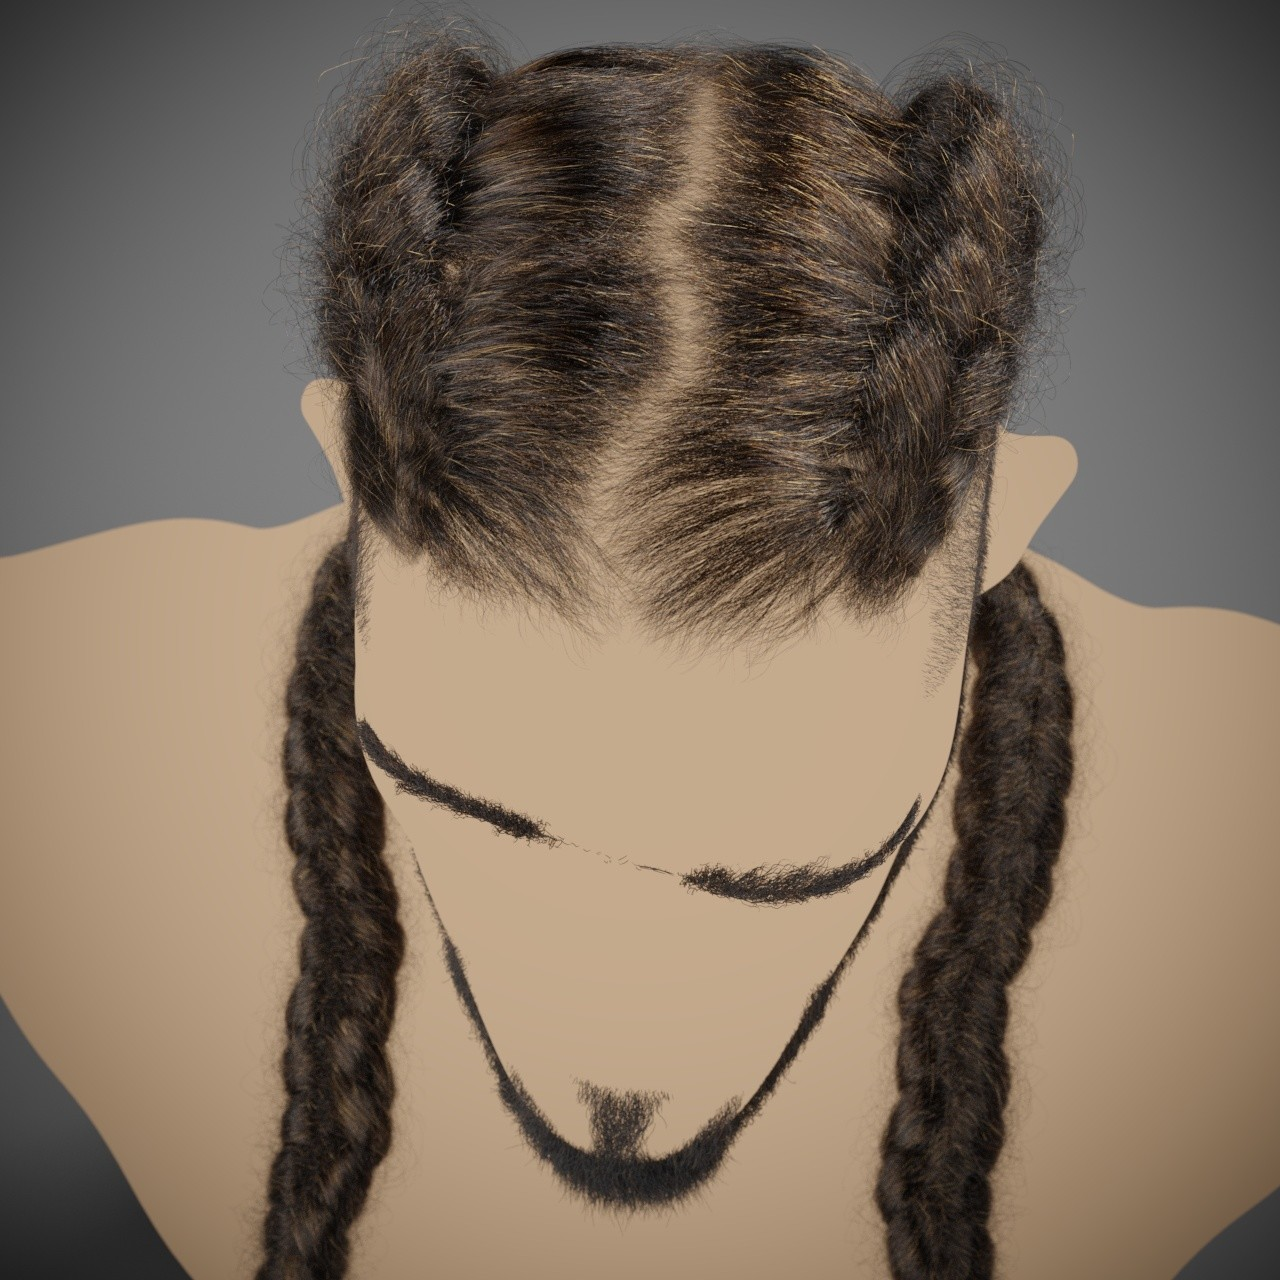 Joseph hairstyle with changes for beard and silhouette.